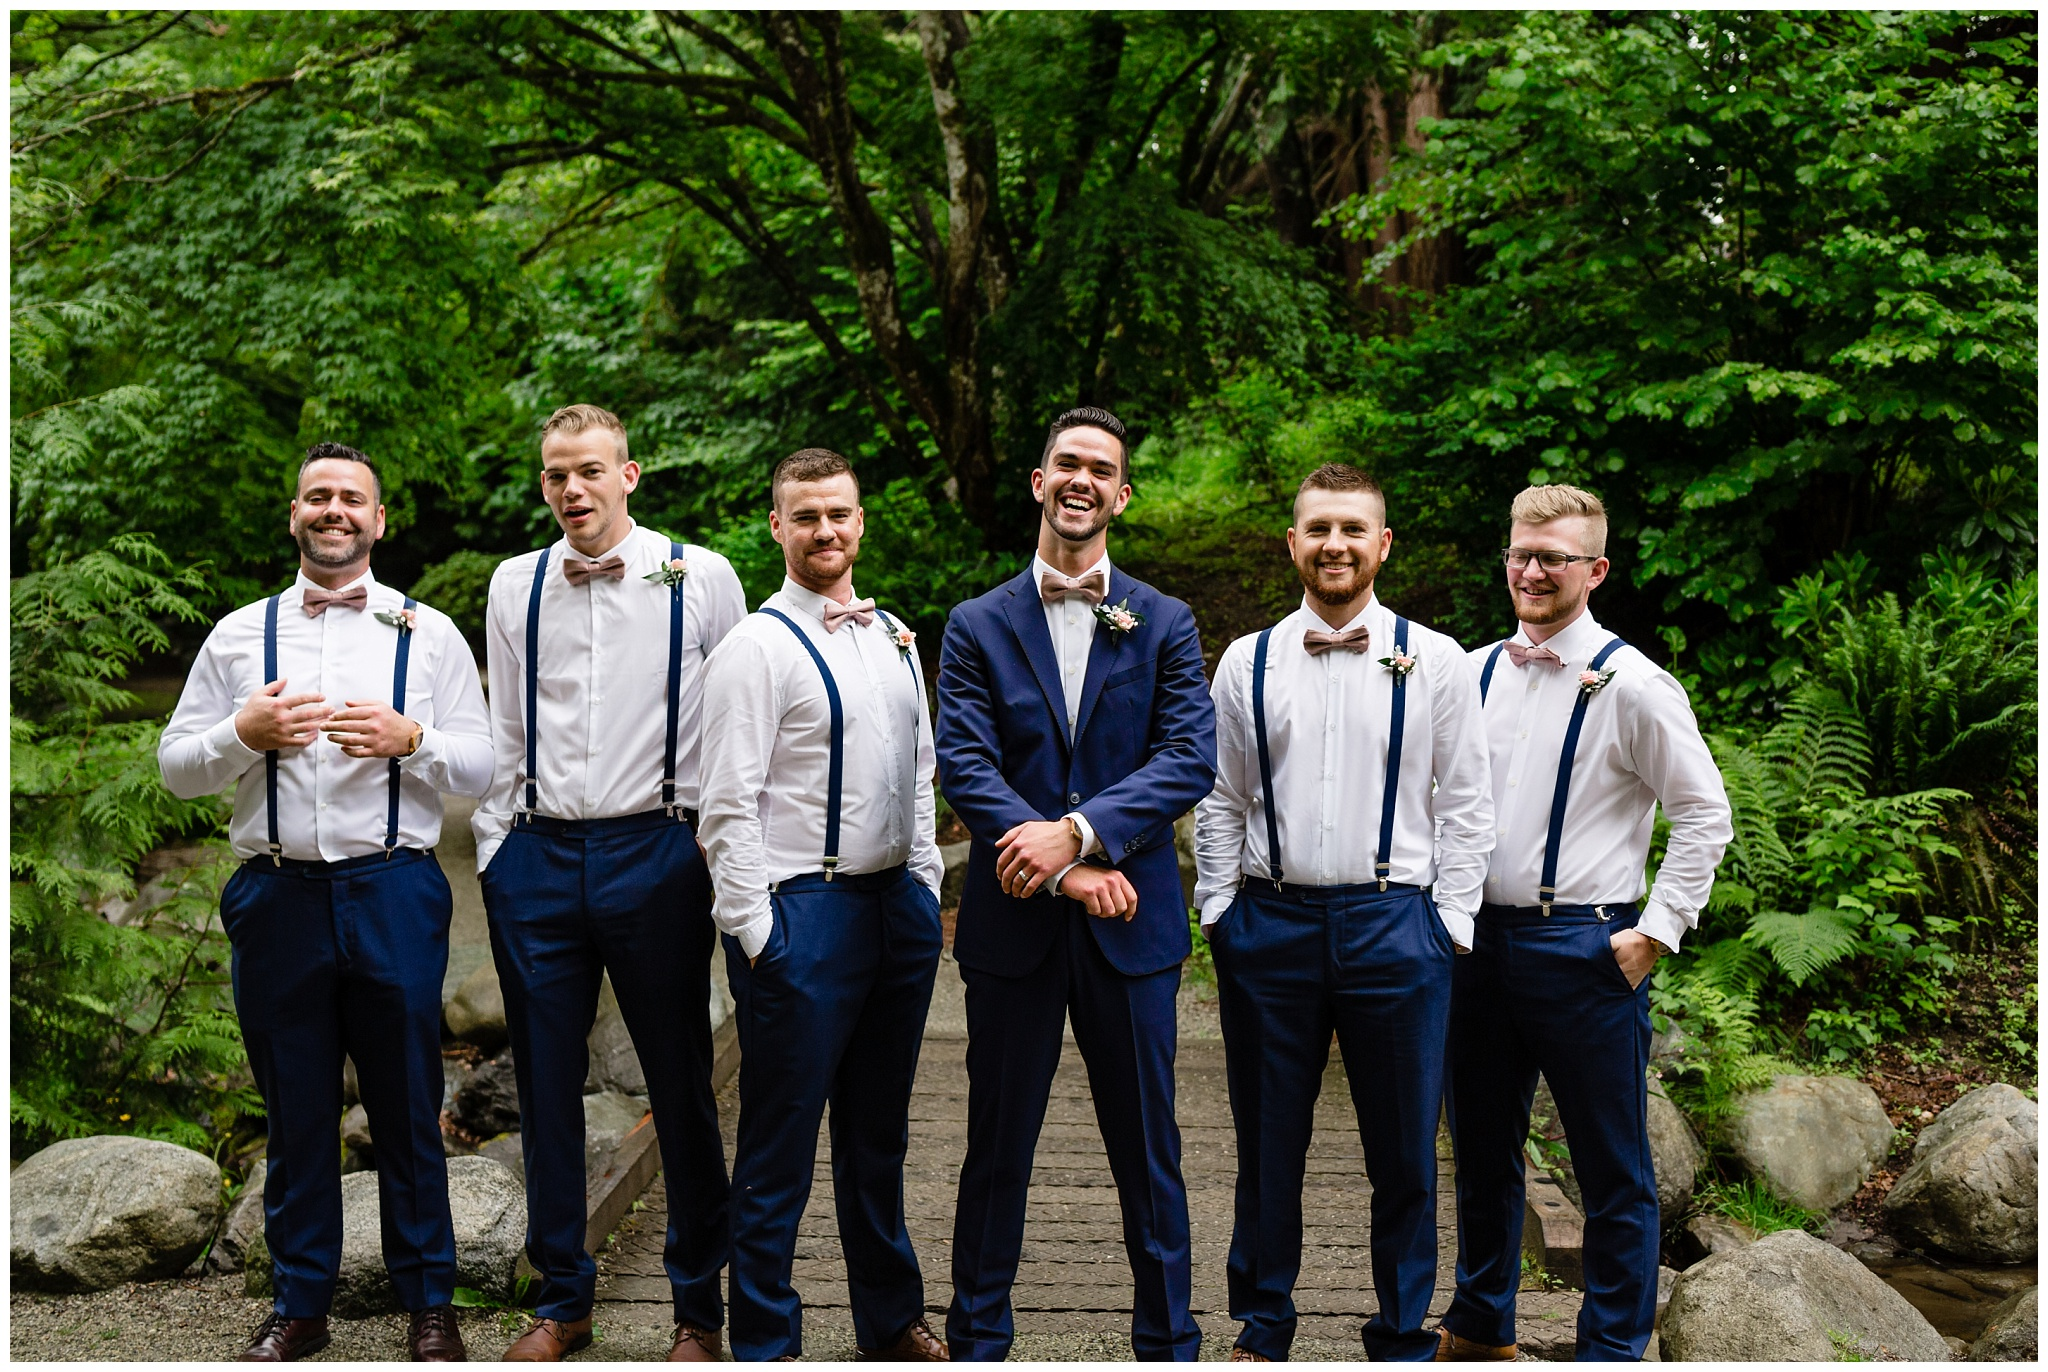 Cloverdale Canadian Reformed Church Wedding Sendall Garden Bride Groom Portraits Christian Couples Best Photographer in Langley Surrey British Columbia_0037.jpg